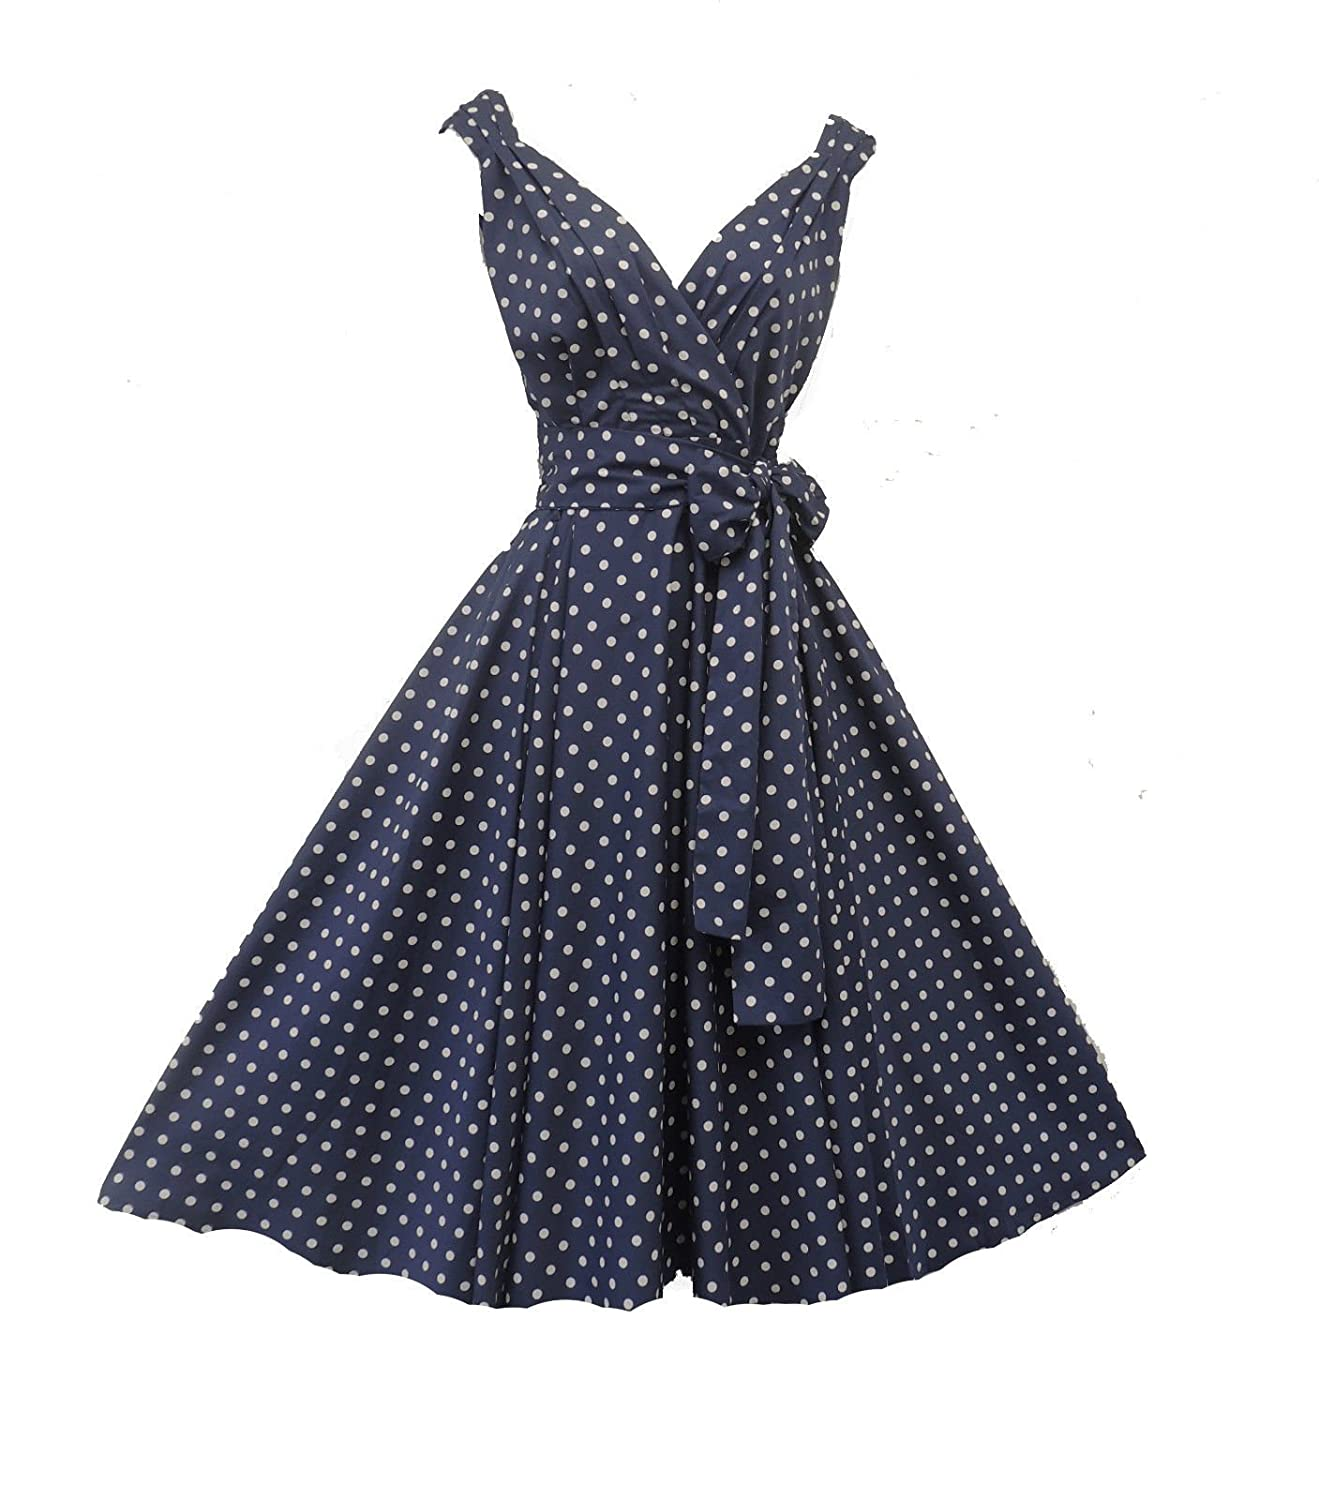 bea97f69c0fe New Rosa Rosa Vintage 1950s style Navy Polka Dot Summer Party Prom Swing  dress  Rosa Rosa  Amazon.co.uk  Clothing